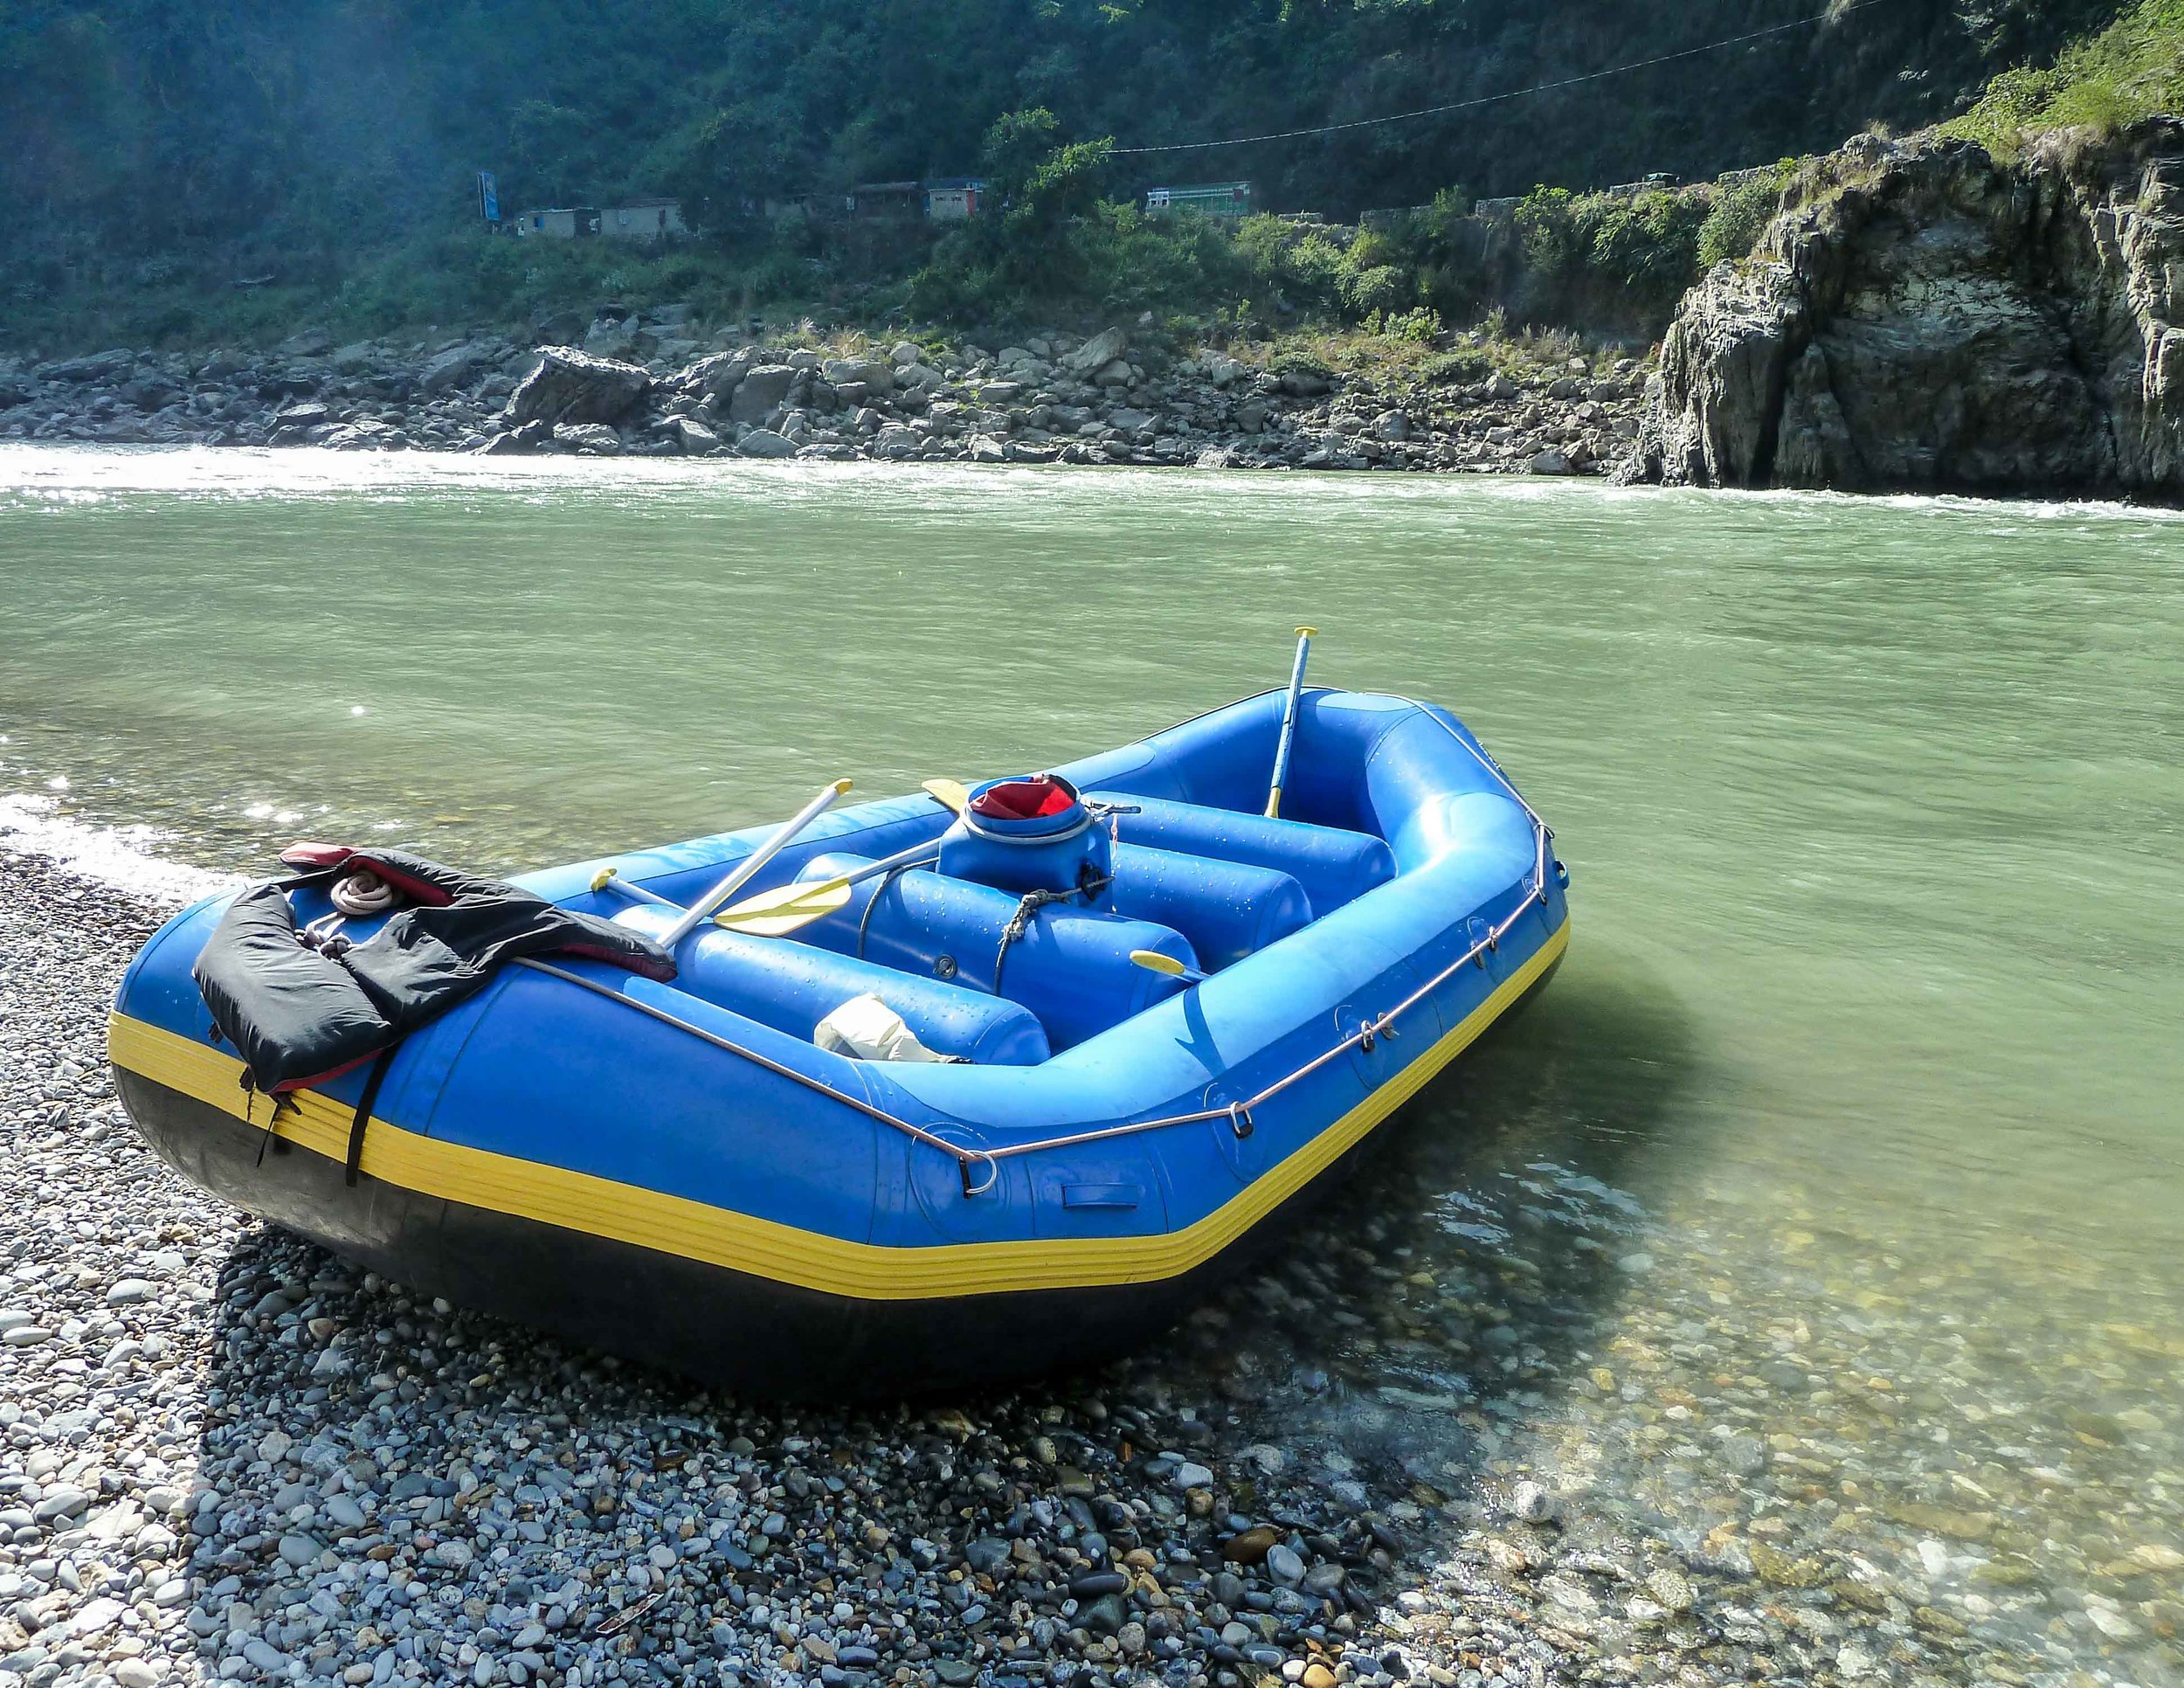 Best things to do in Nepal: kayak on the way to Pokhara